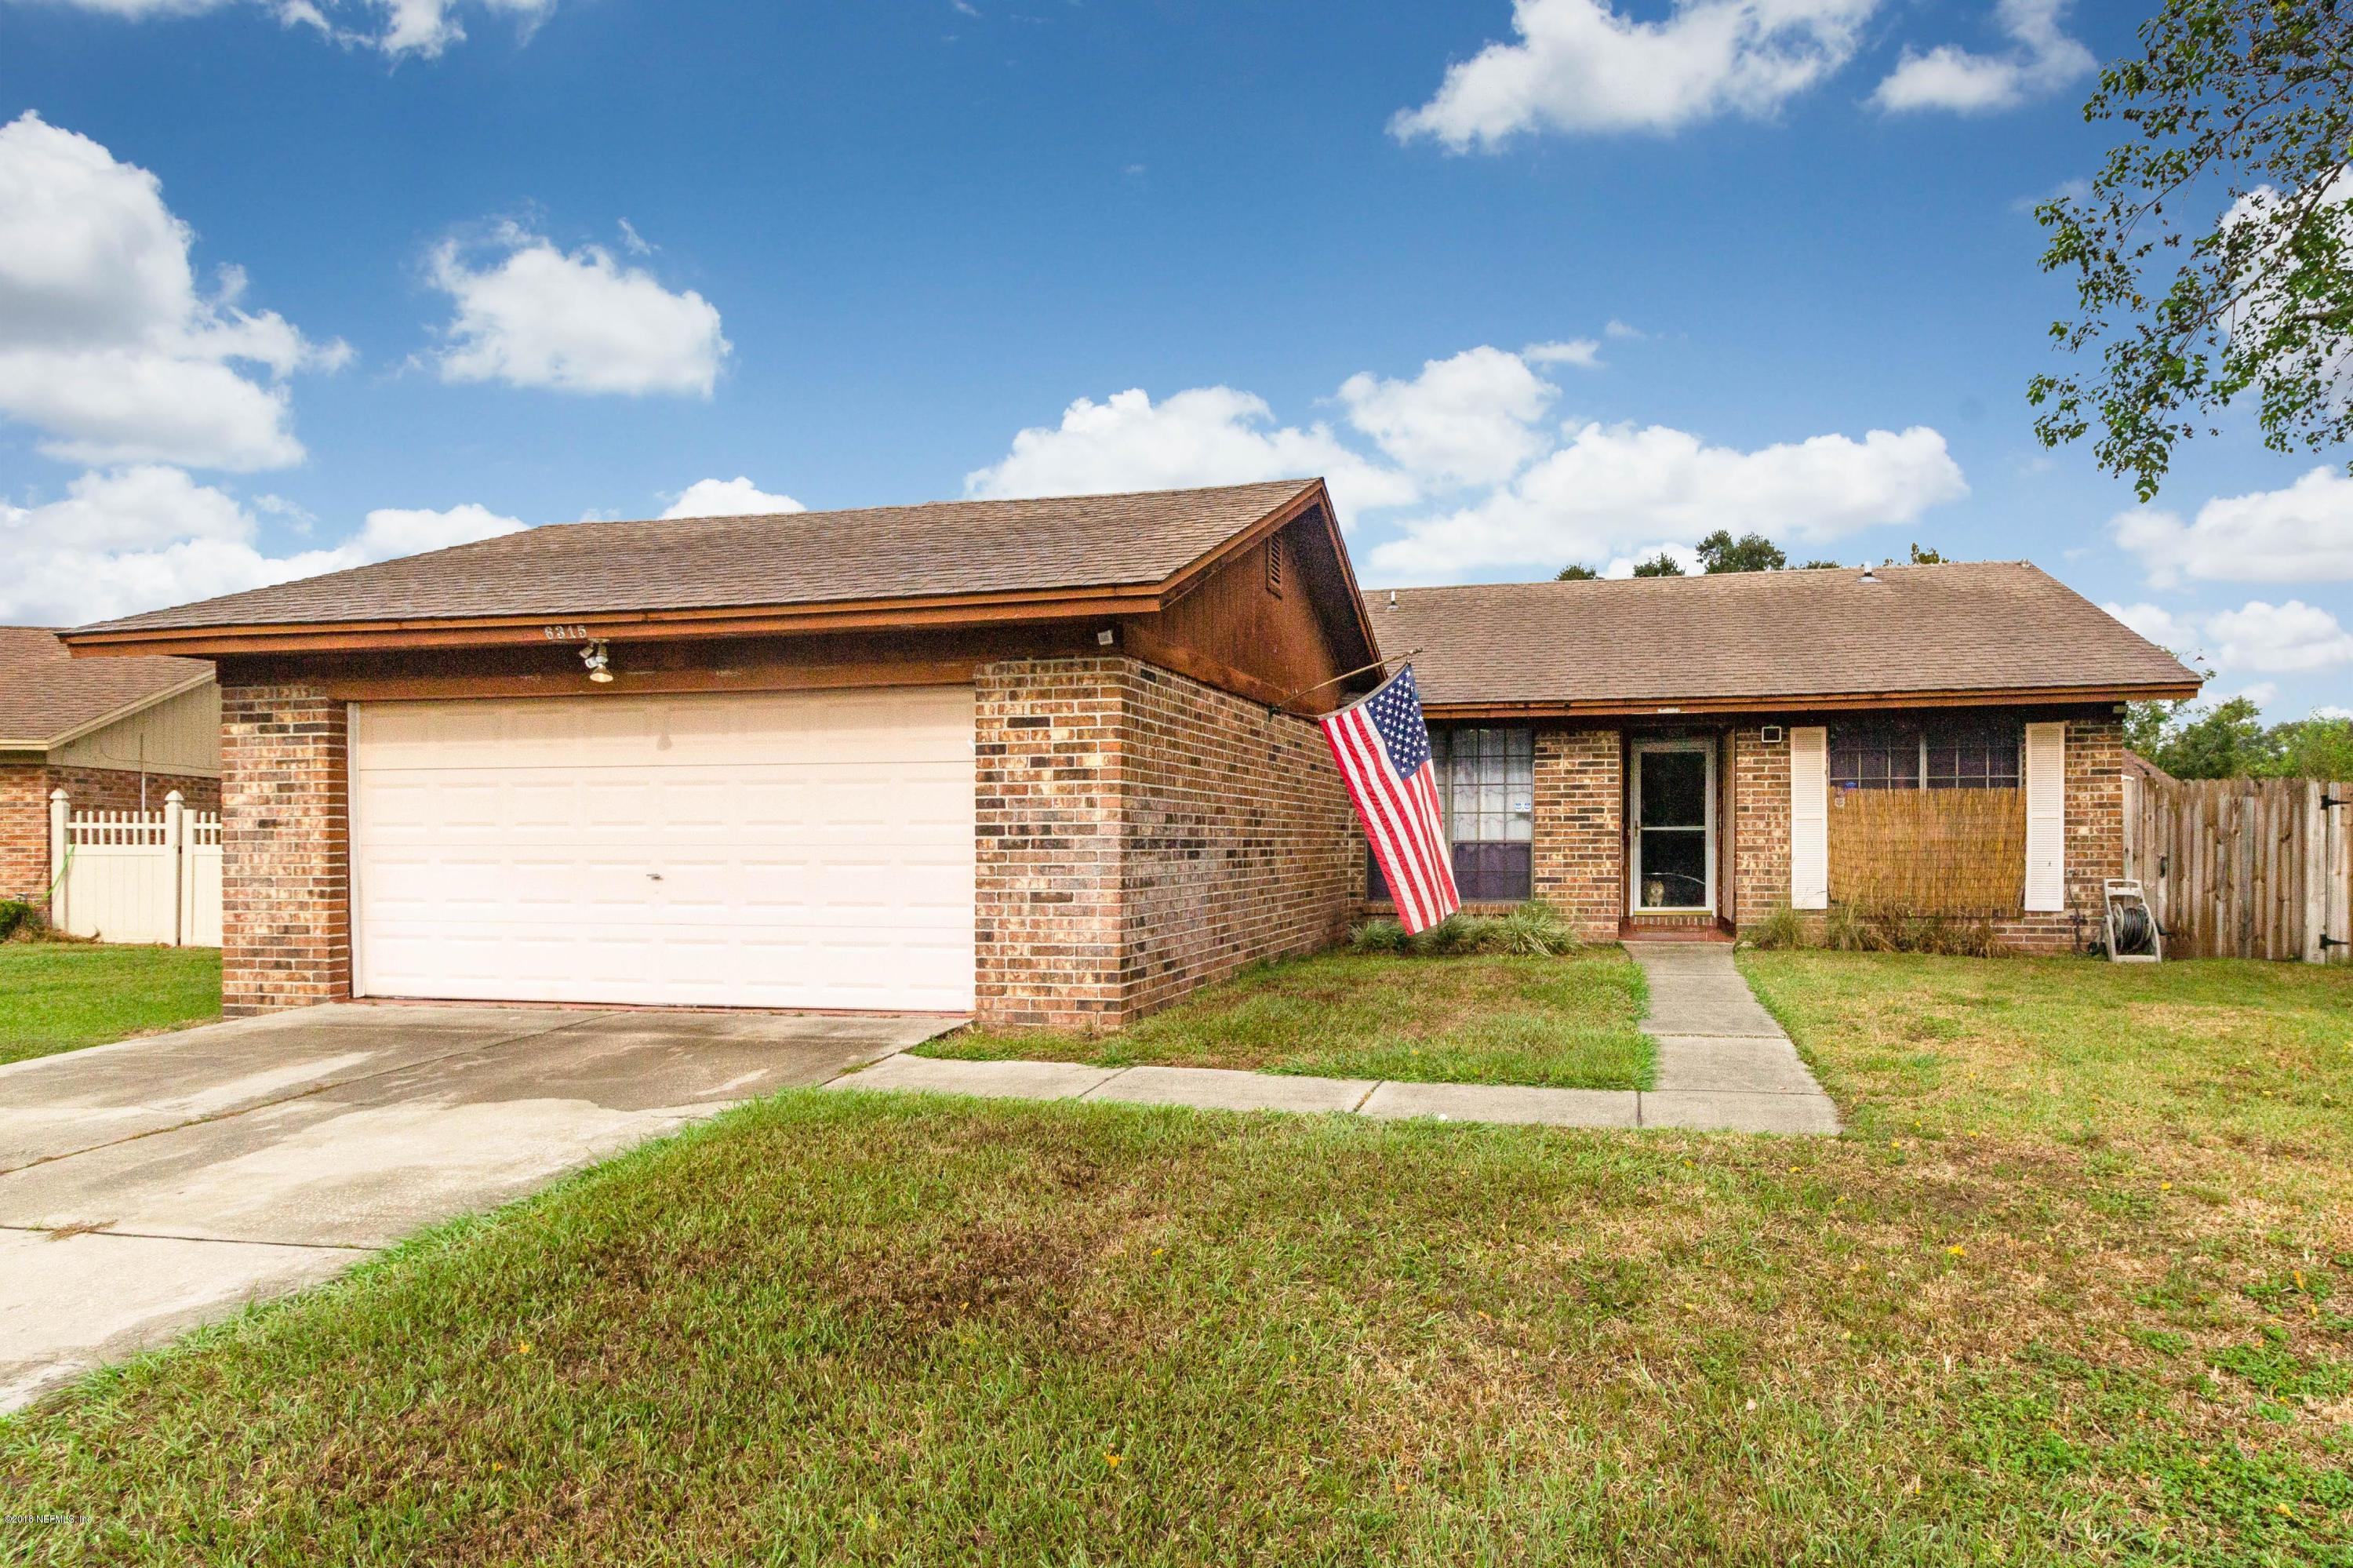 6315 IAN CHAD, JACKSONVILLE, FLORIDA 32244, 3 Bedrooms Bedrooms, ,2 BathroomsBathrooms,Residential - single family,For sale,IAN CHAD,961750